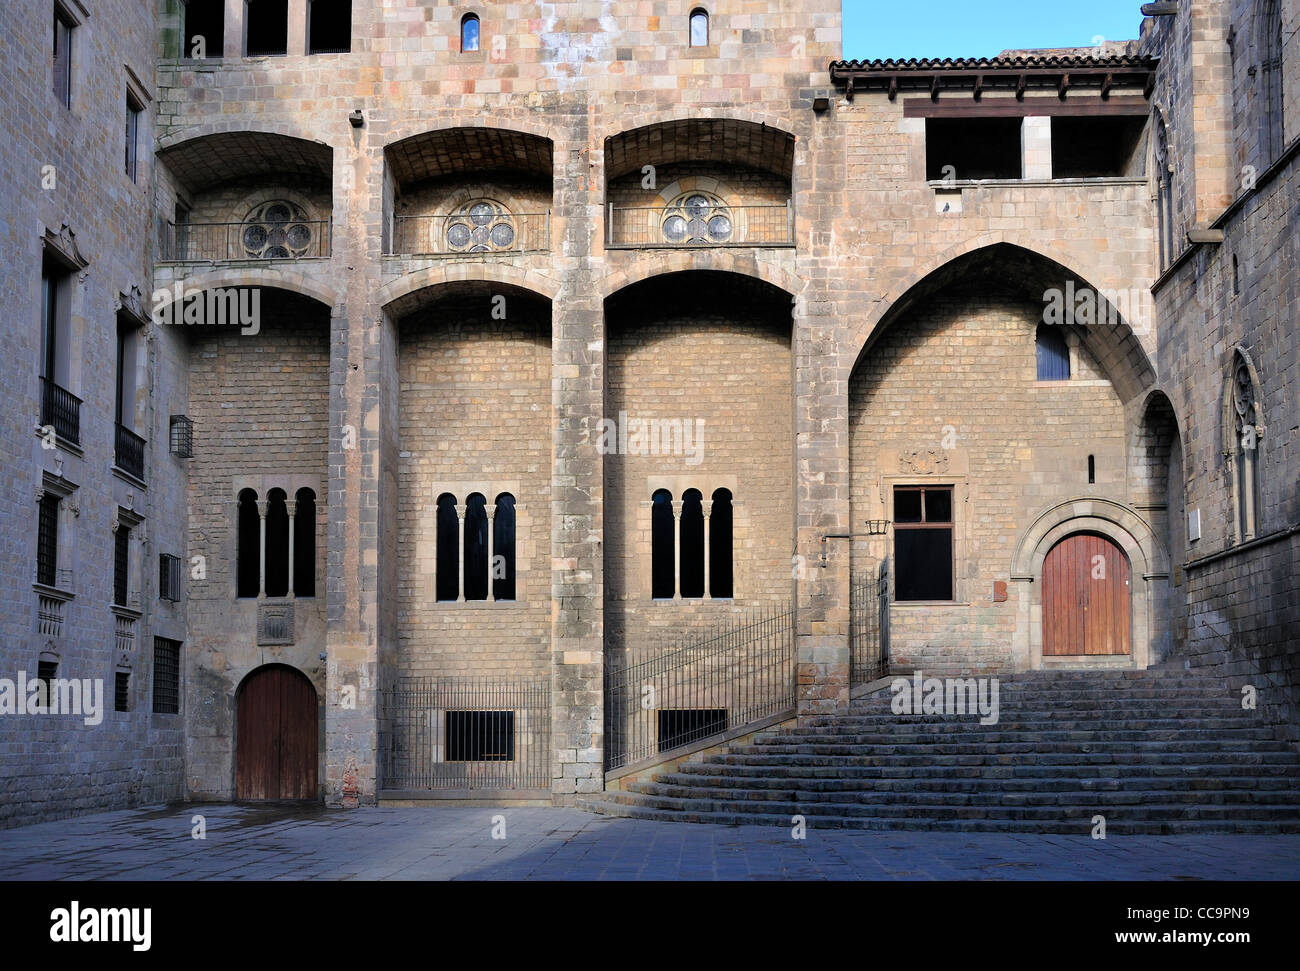 Barcelona, Spain. Placa del Rei in Barri Gotic - Stock Image